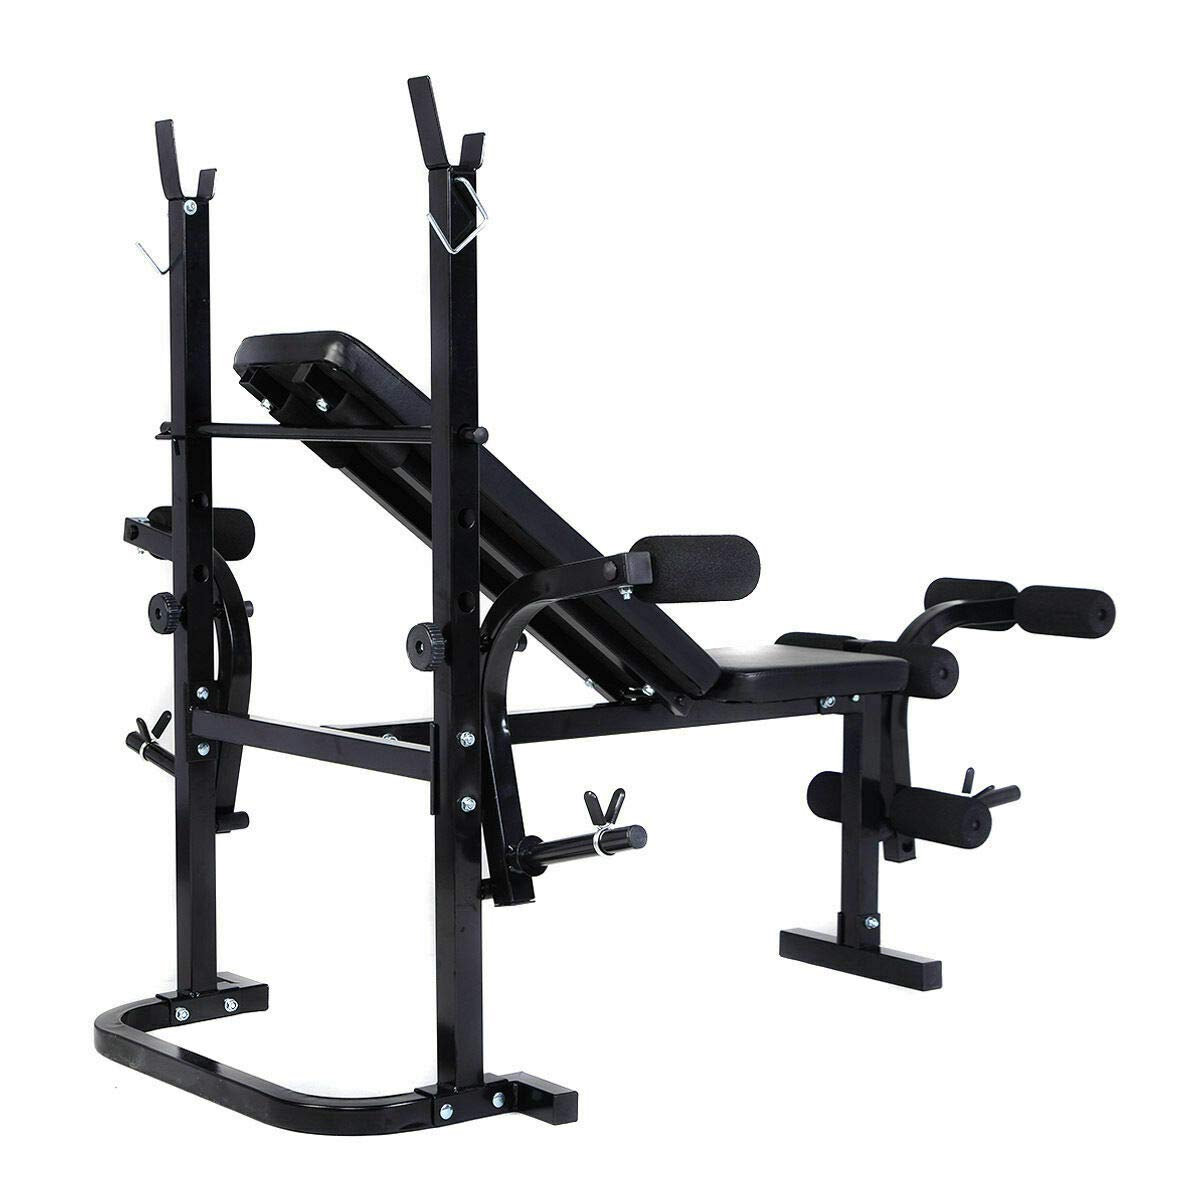 Heavens Tvcz Professional Sturdy and Durable Bench Weight Adjustable Multi-Function Fitness Lifting Exercise Workout Sit Strength Up Gym Home for Commercial, Light institutional and Home use by Heavens Tvcz